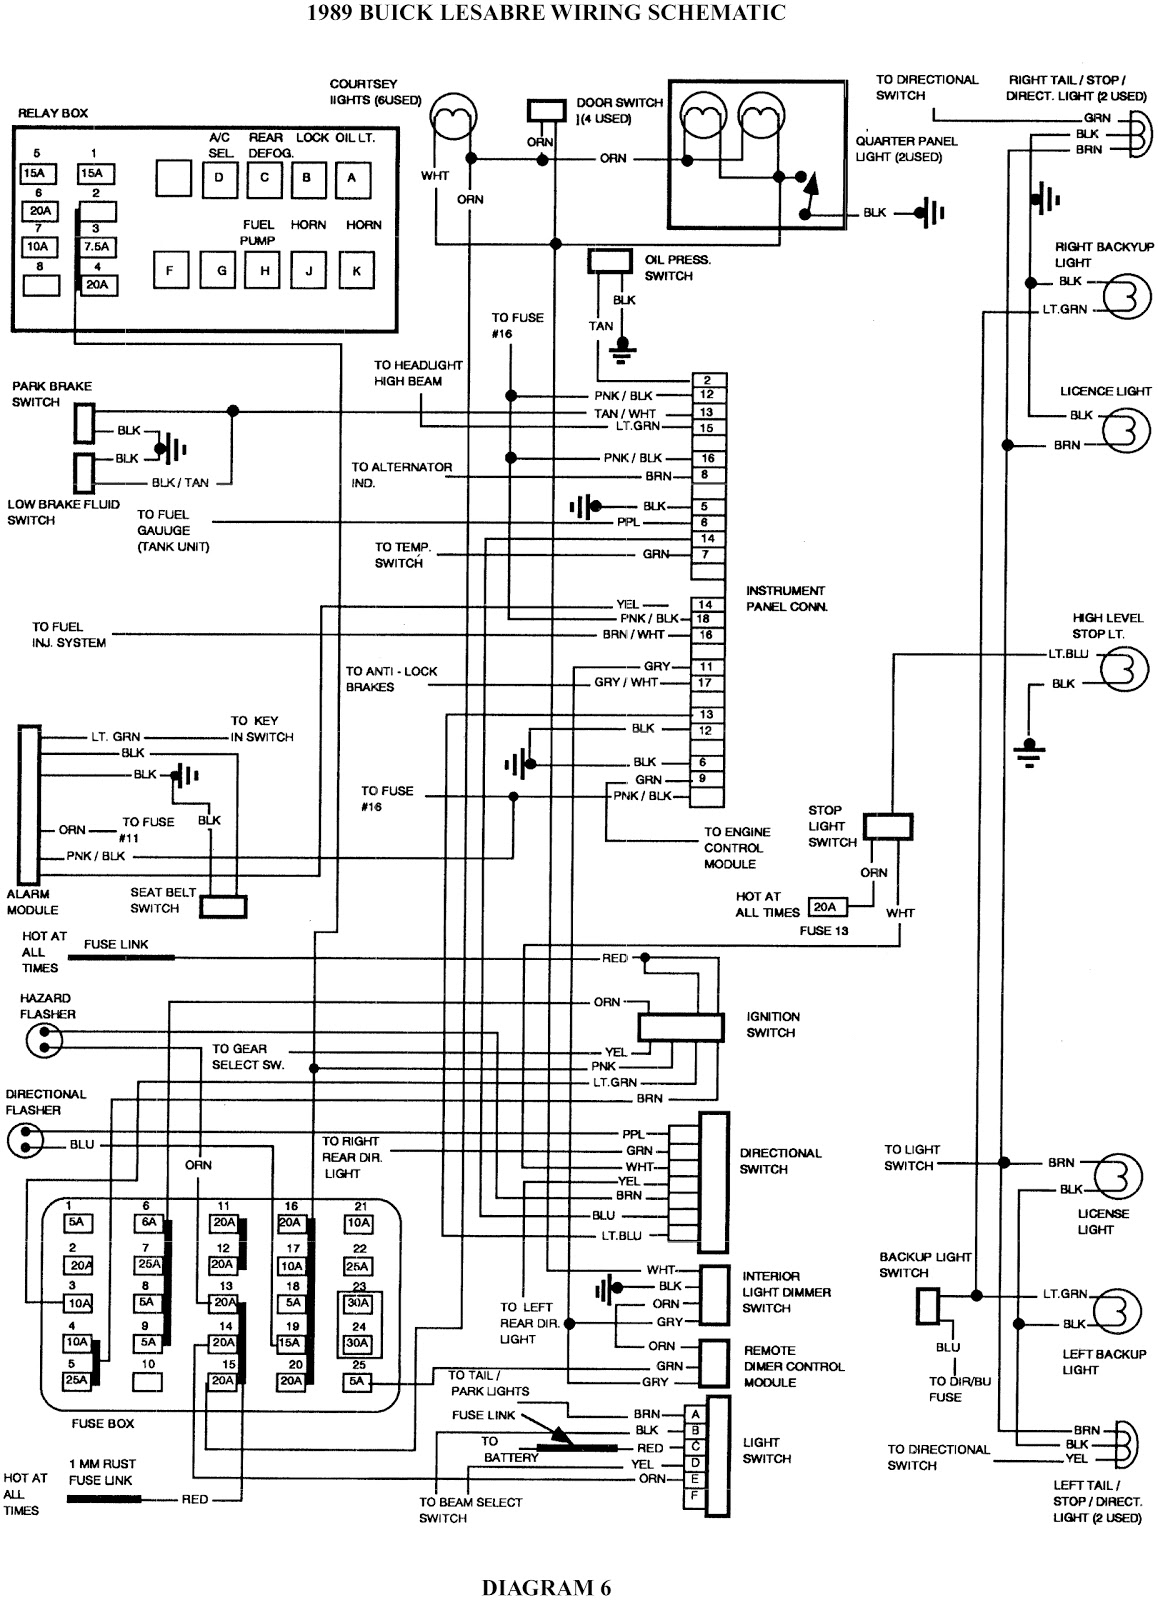 99 Buick Century Radio Wire Harness Diagram on ford el wiring diagram stereo